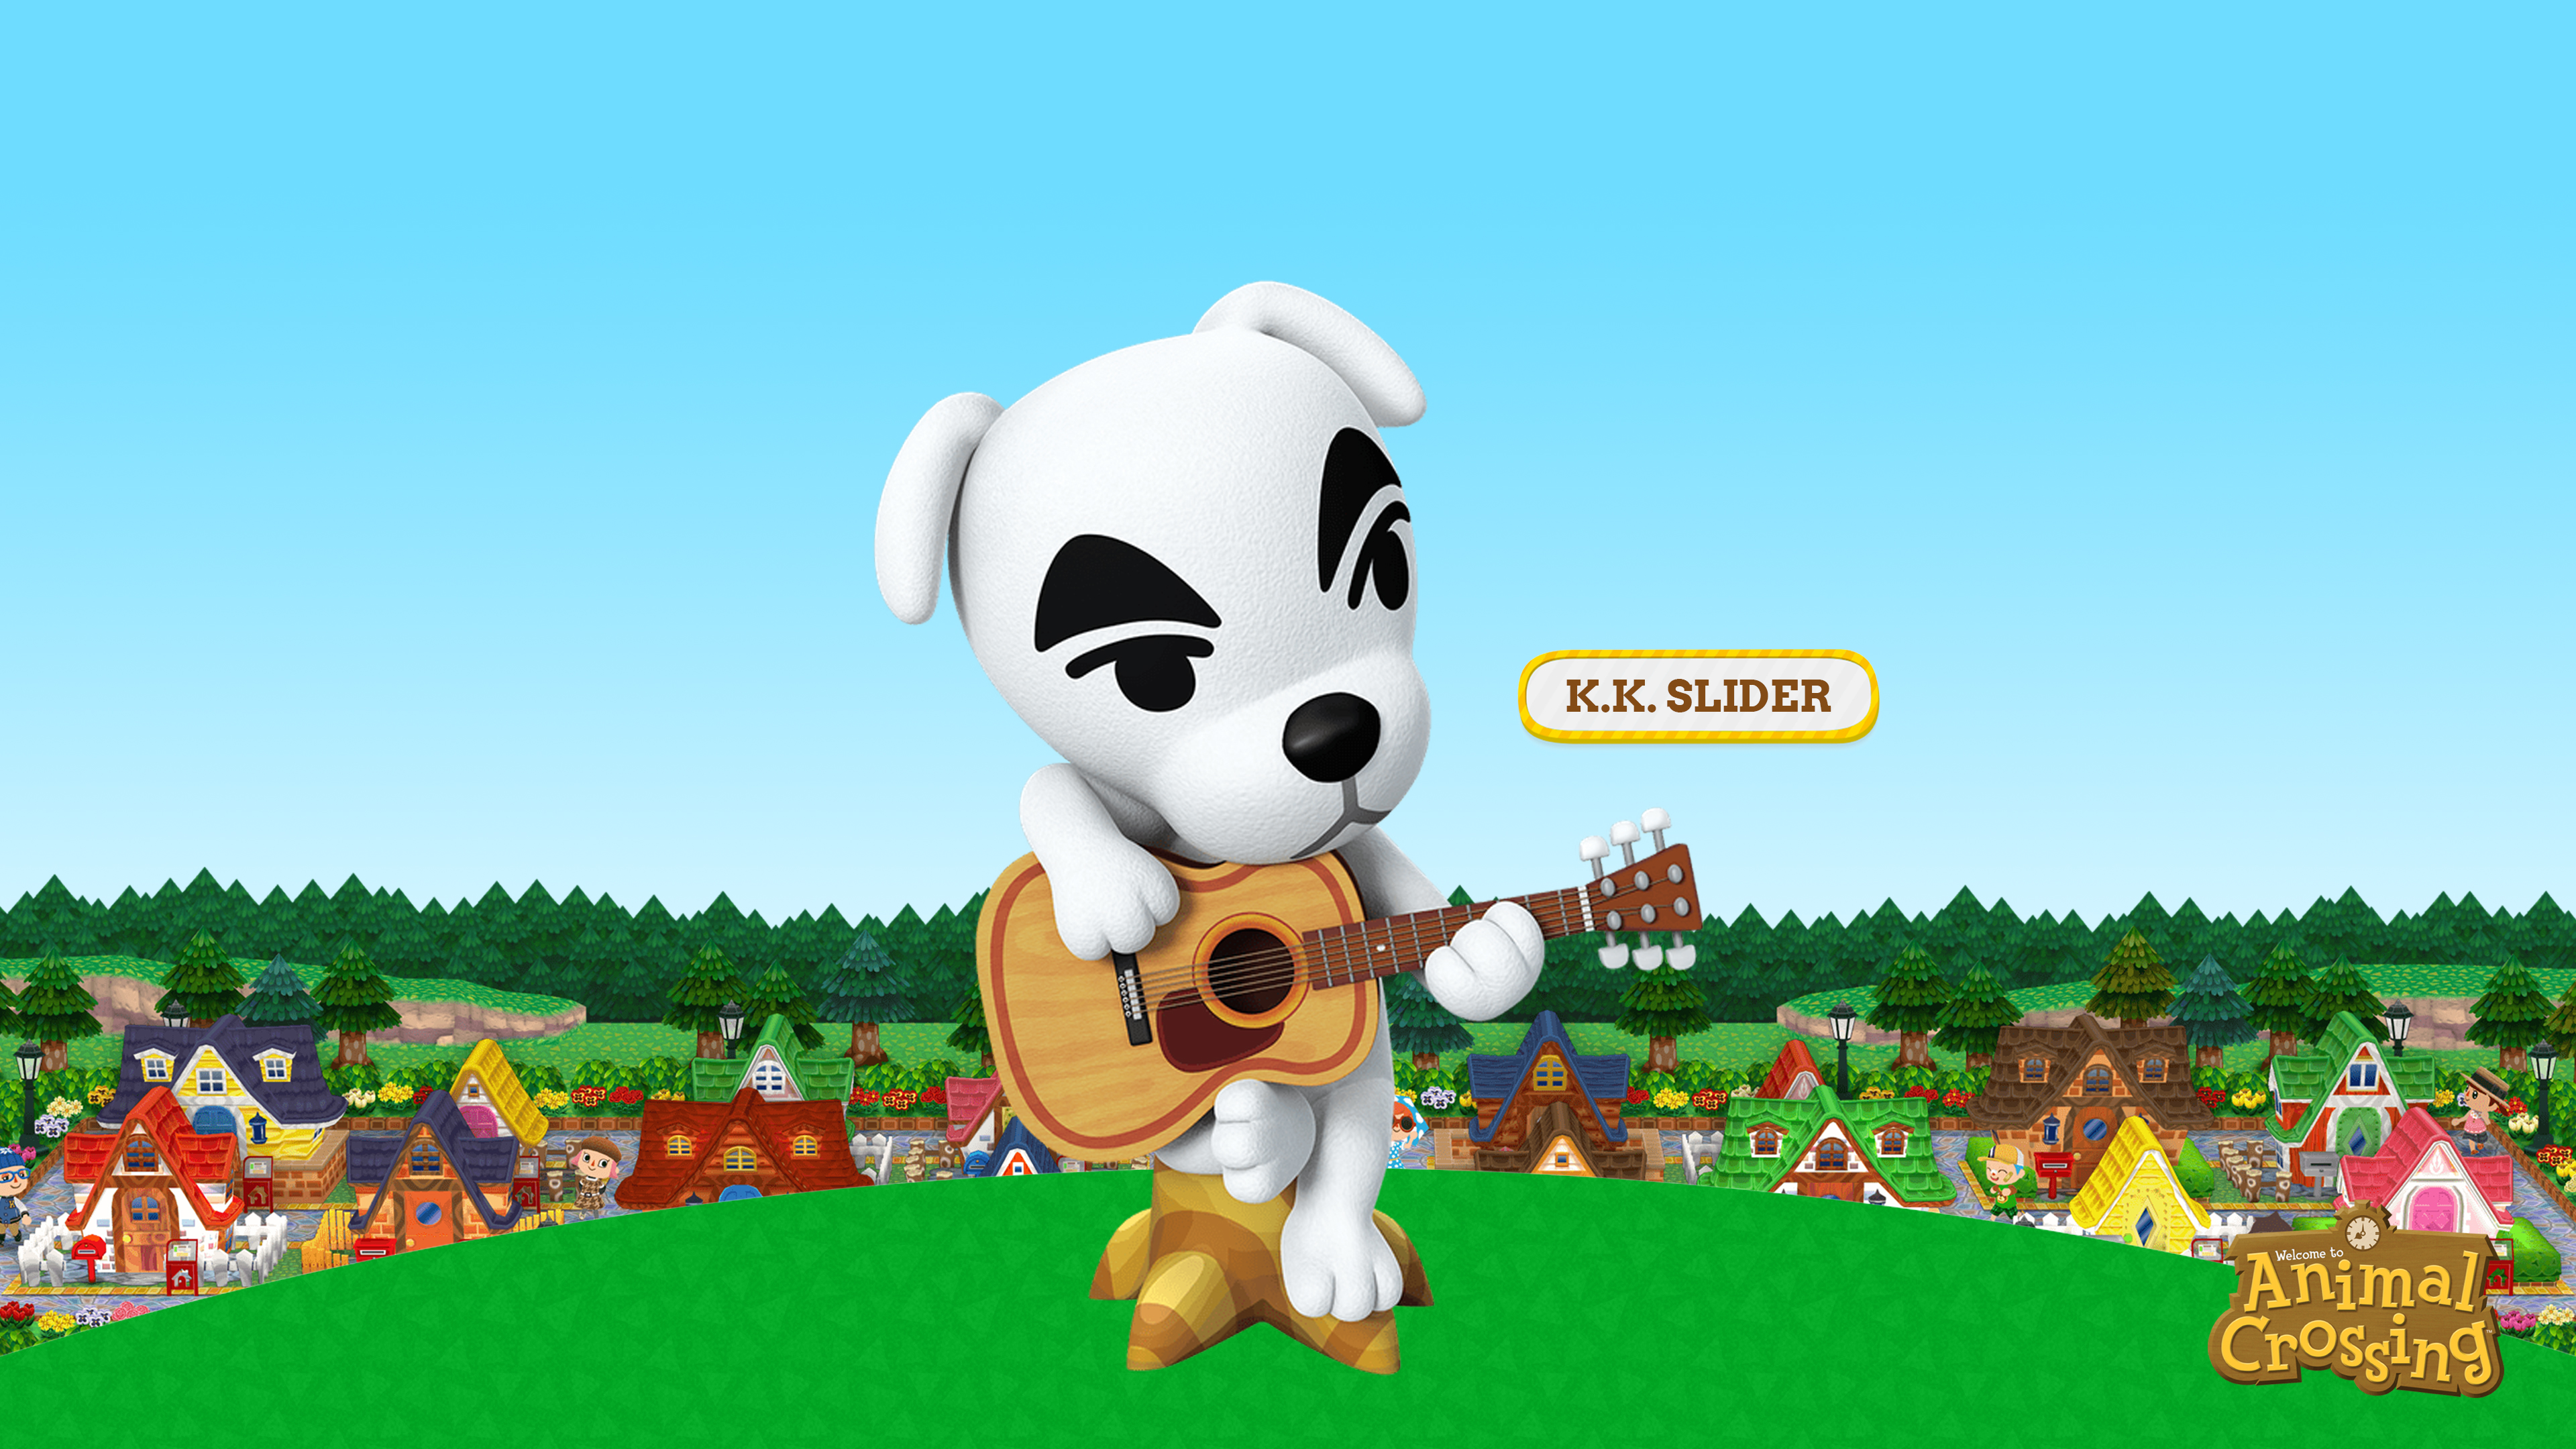 Animal Crossing K K Slider Wallpaper Cat With Monocle